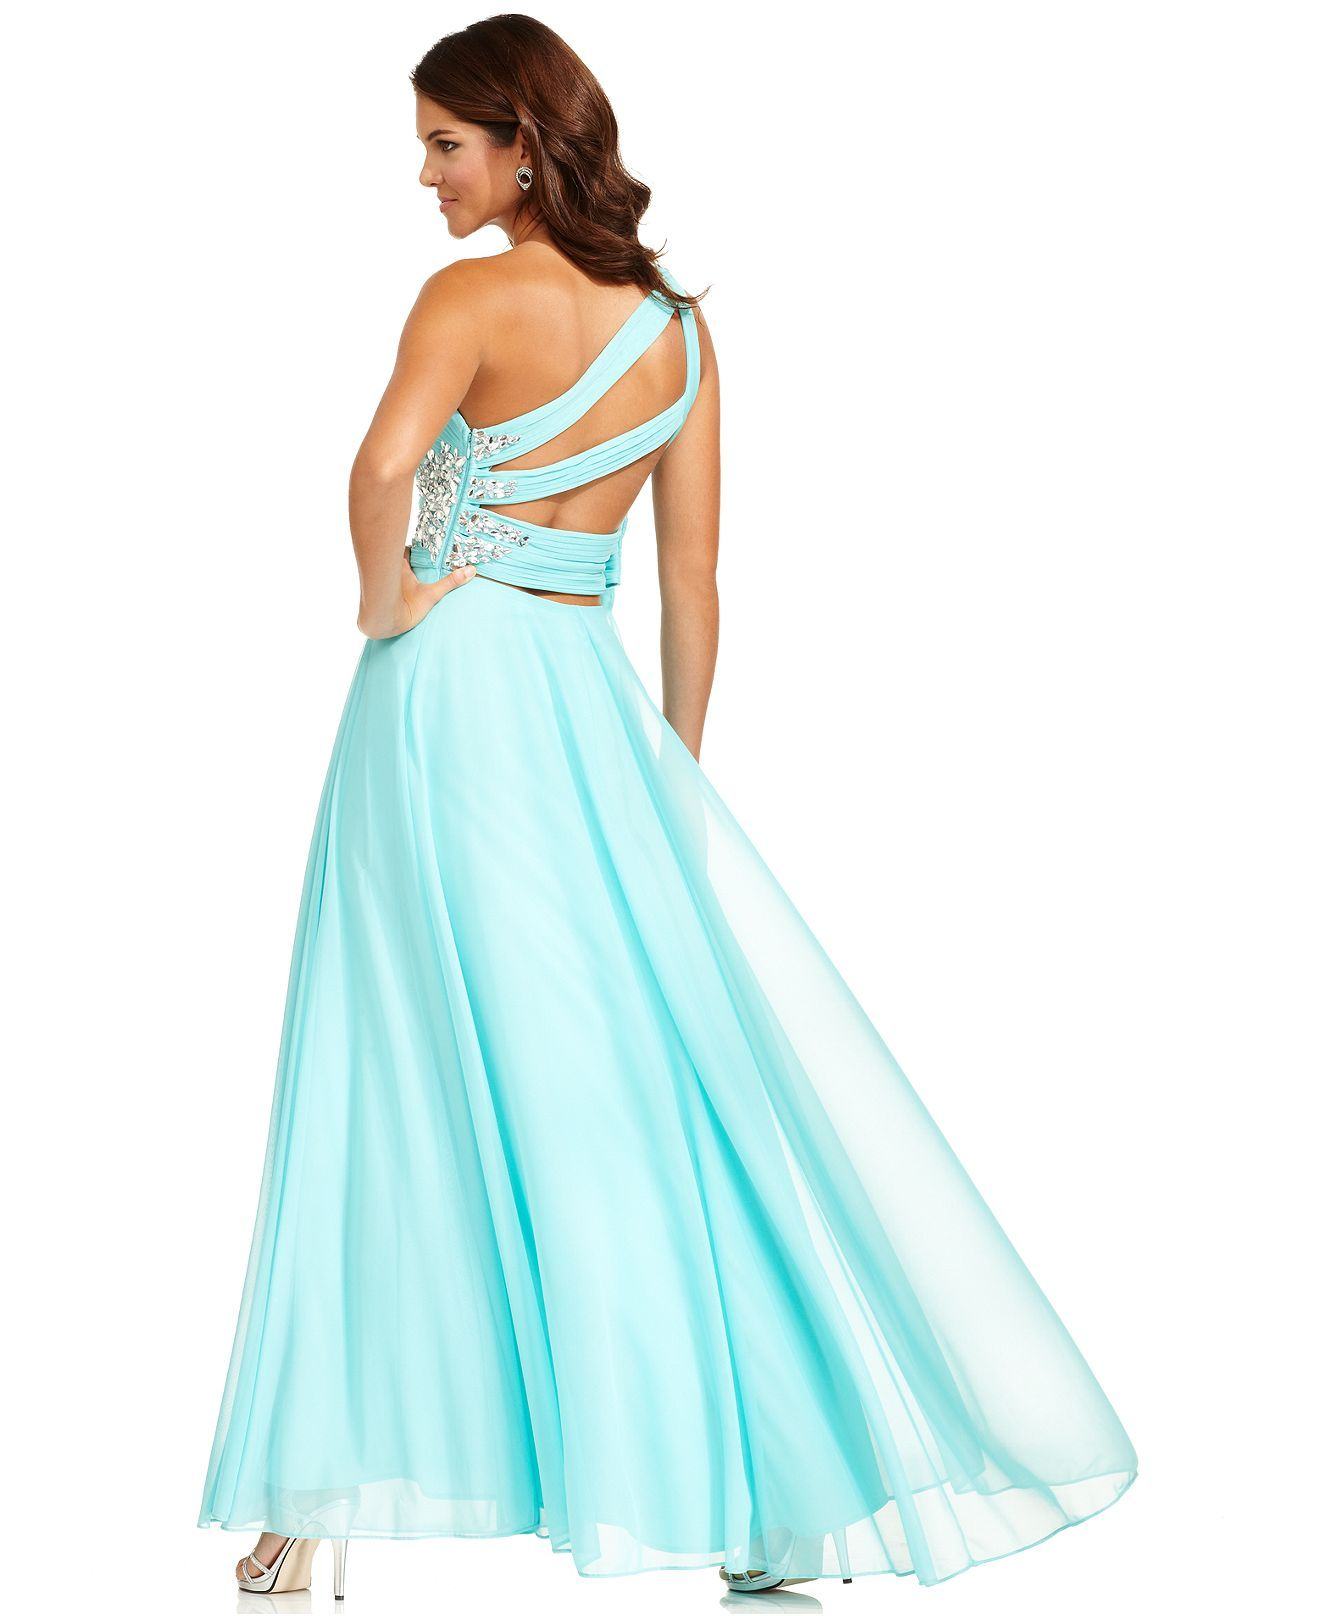 Xscape dress sleeveless one shoulder beaded gown juniors prom xscape dress sleeveless one shoulder beaded gown juniors prom dresses macys ombrellifo Images